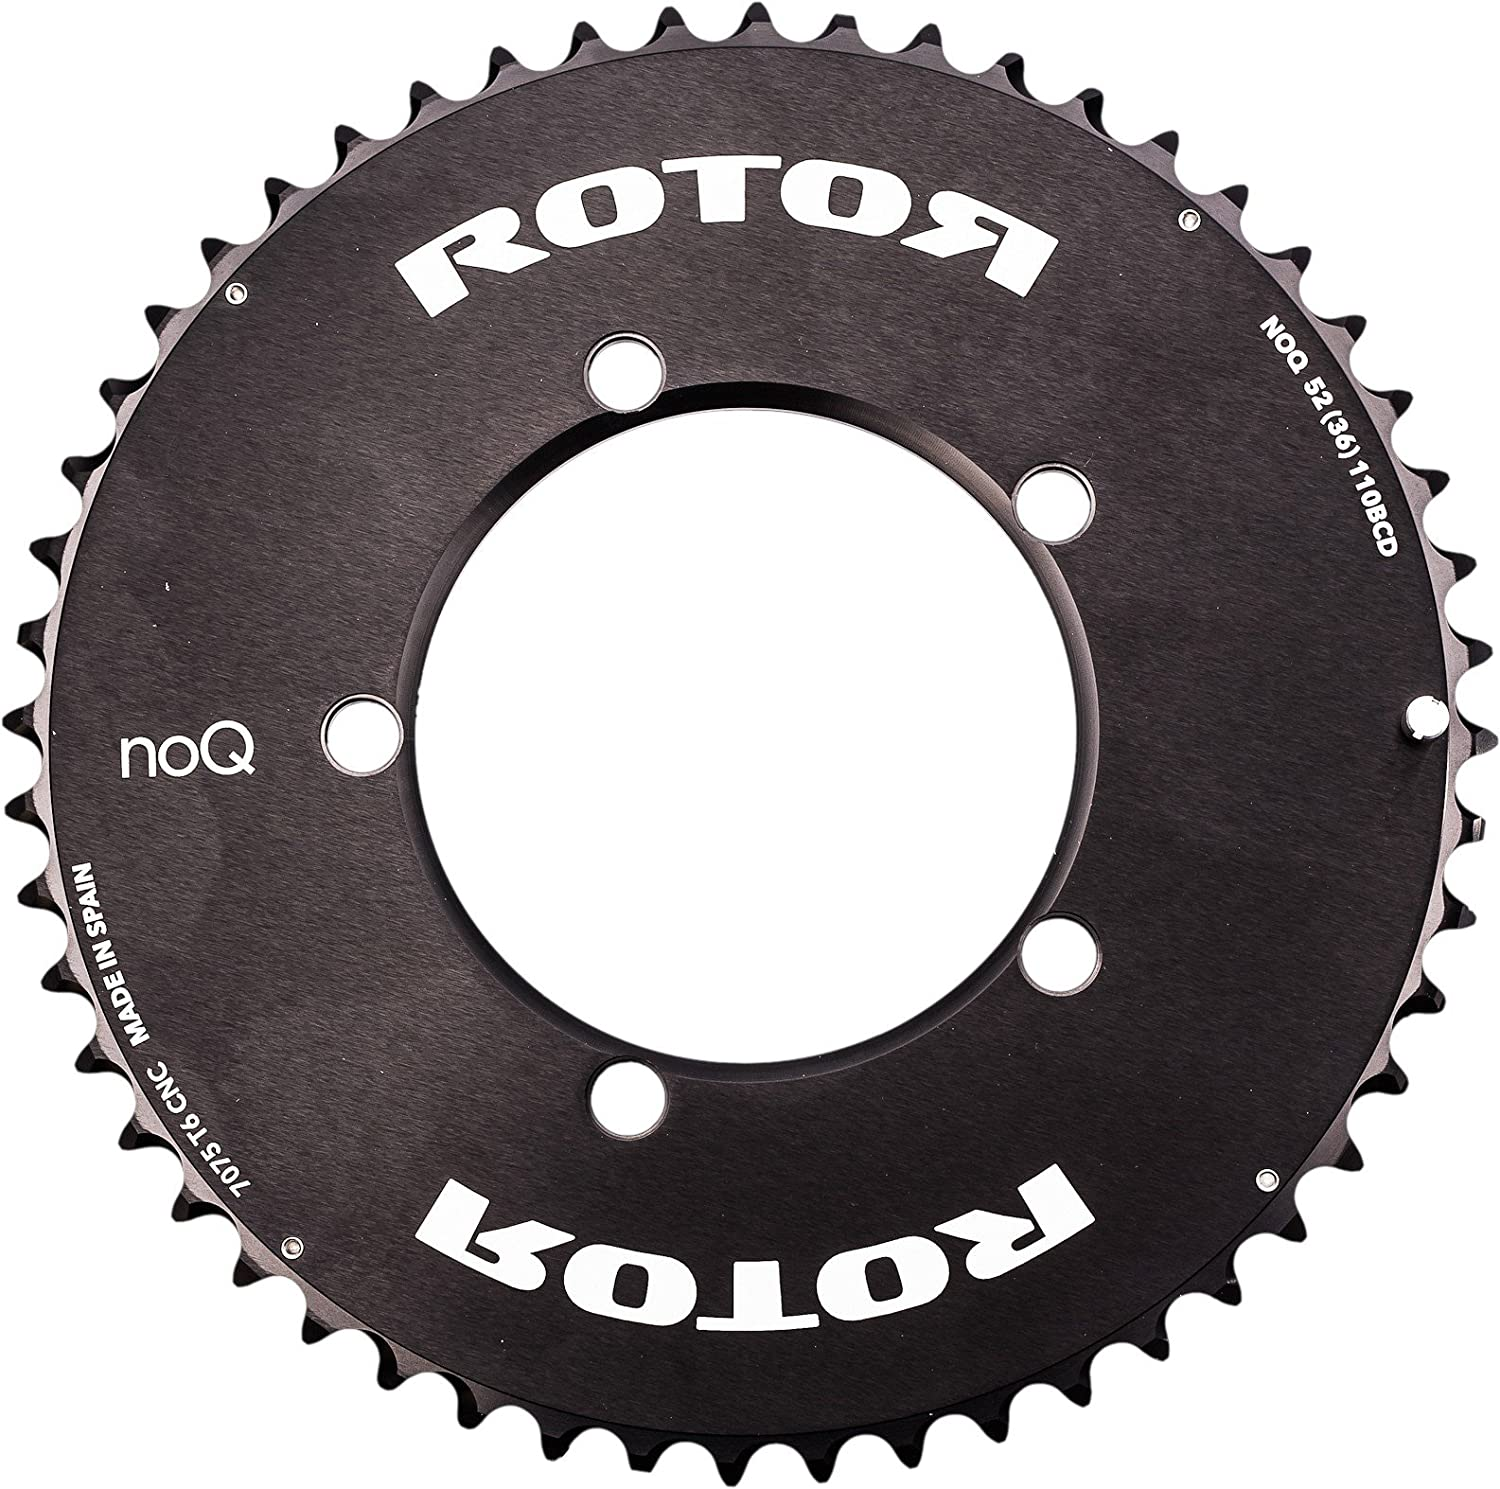 ROTOR(ローター) NOQ AERO OUTER Road Chainring Compact 110PCD [Size: 53-50T] [並行輸入品] B06Y3M7X22 53T-Outer